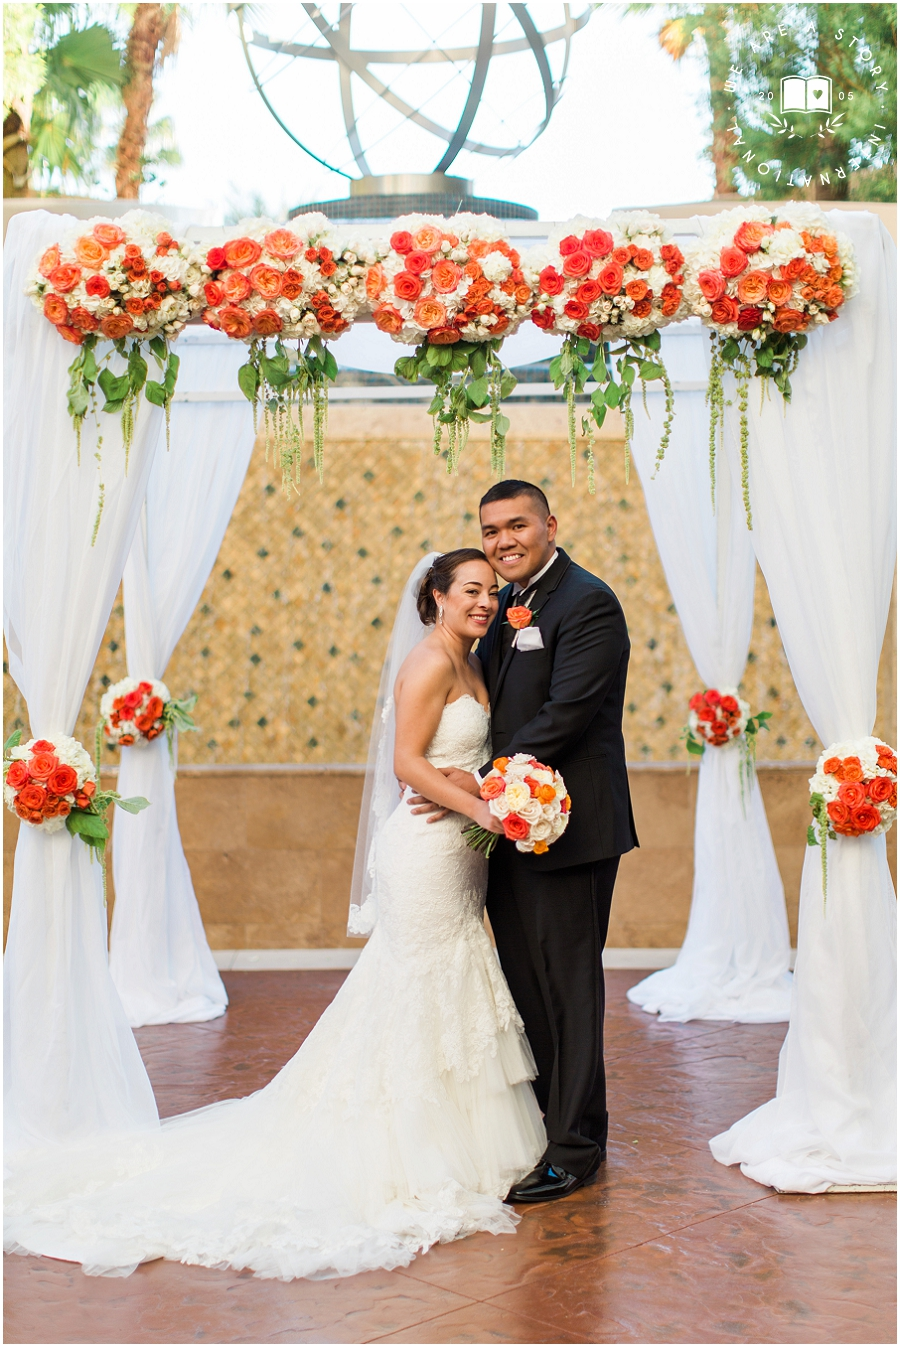 Four Seasons wedding photographer Las Vegas _ We Are A Story wedding photographer_2496.jpg